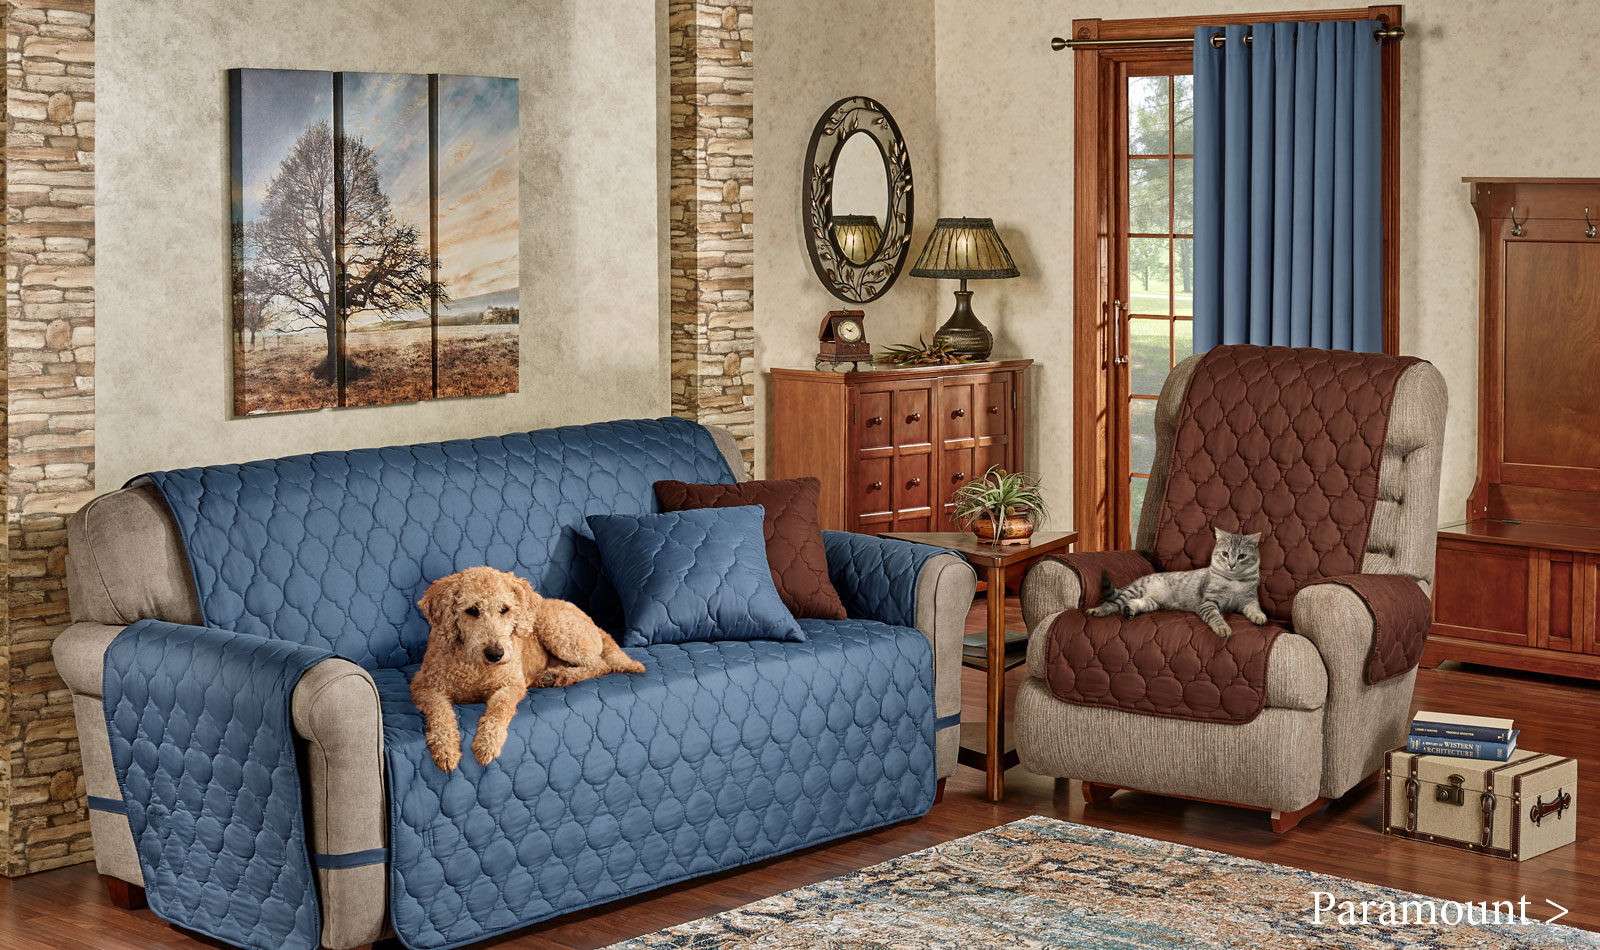 Get The Look - Paramount Living Room - Furniture Covers